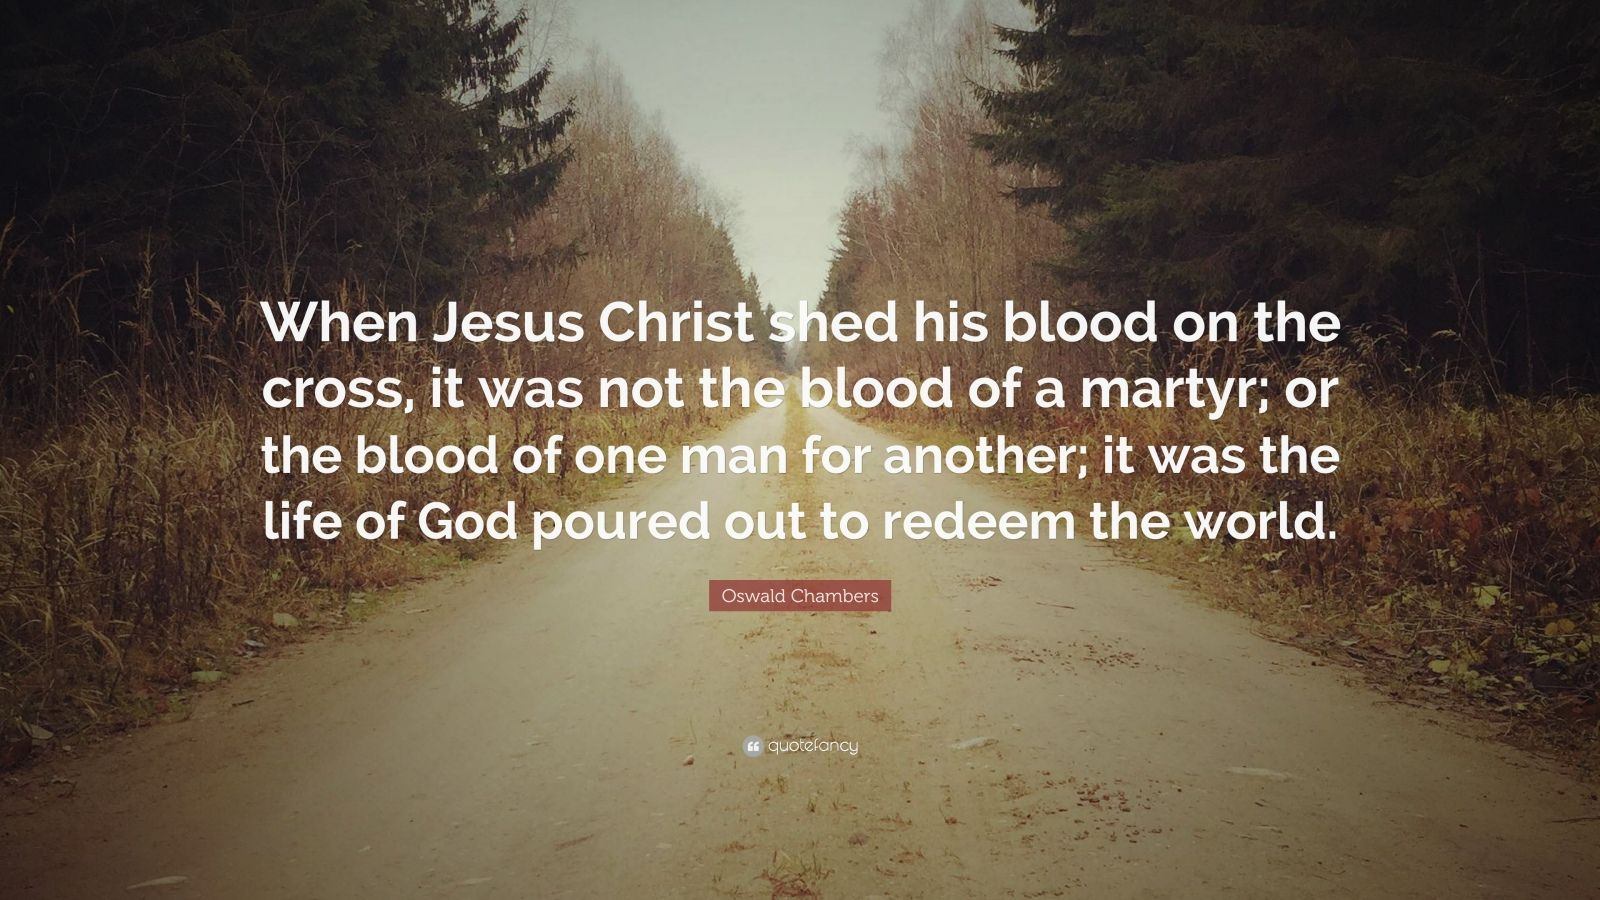 "Oswald Chambers Quote: ""When Jesus Christ shed his blood on the cross, it was not the blood of a martyr; or the blood of one man for another; it was the life of God poured out to redeem the world."""